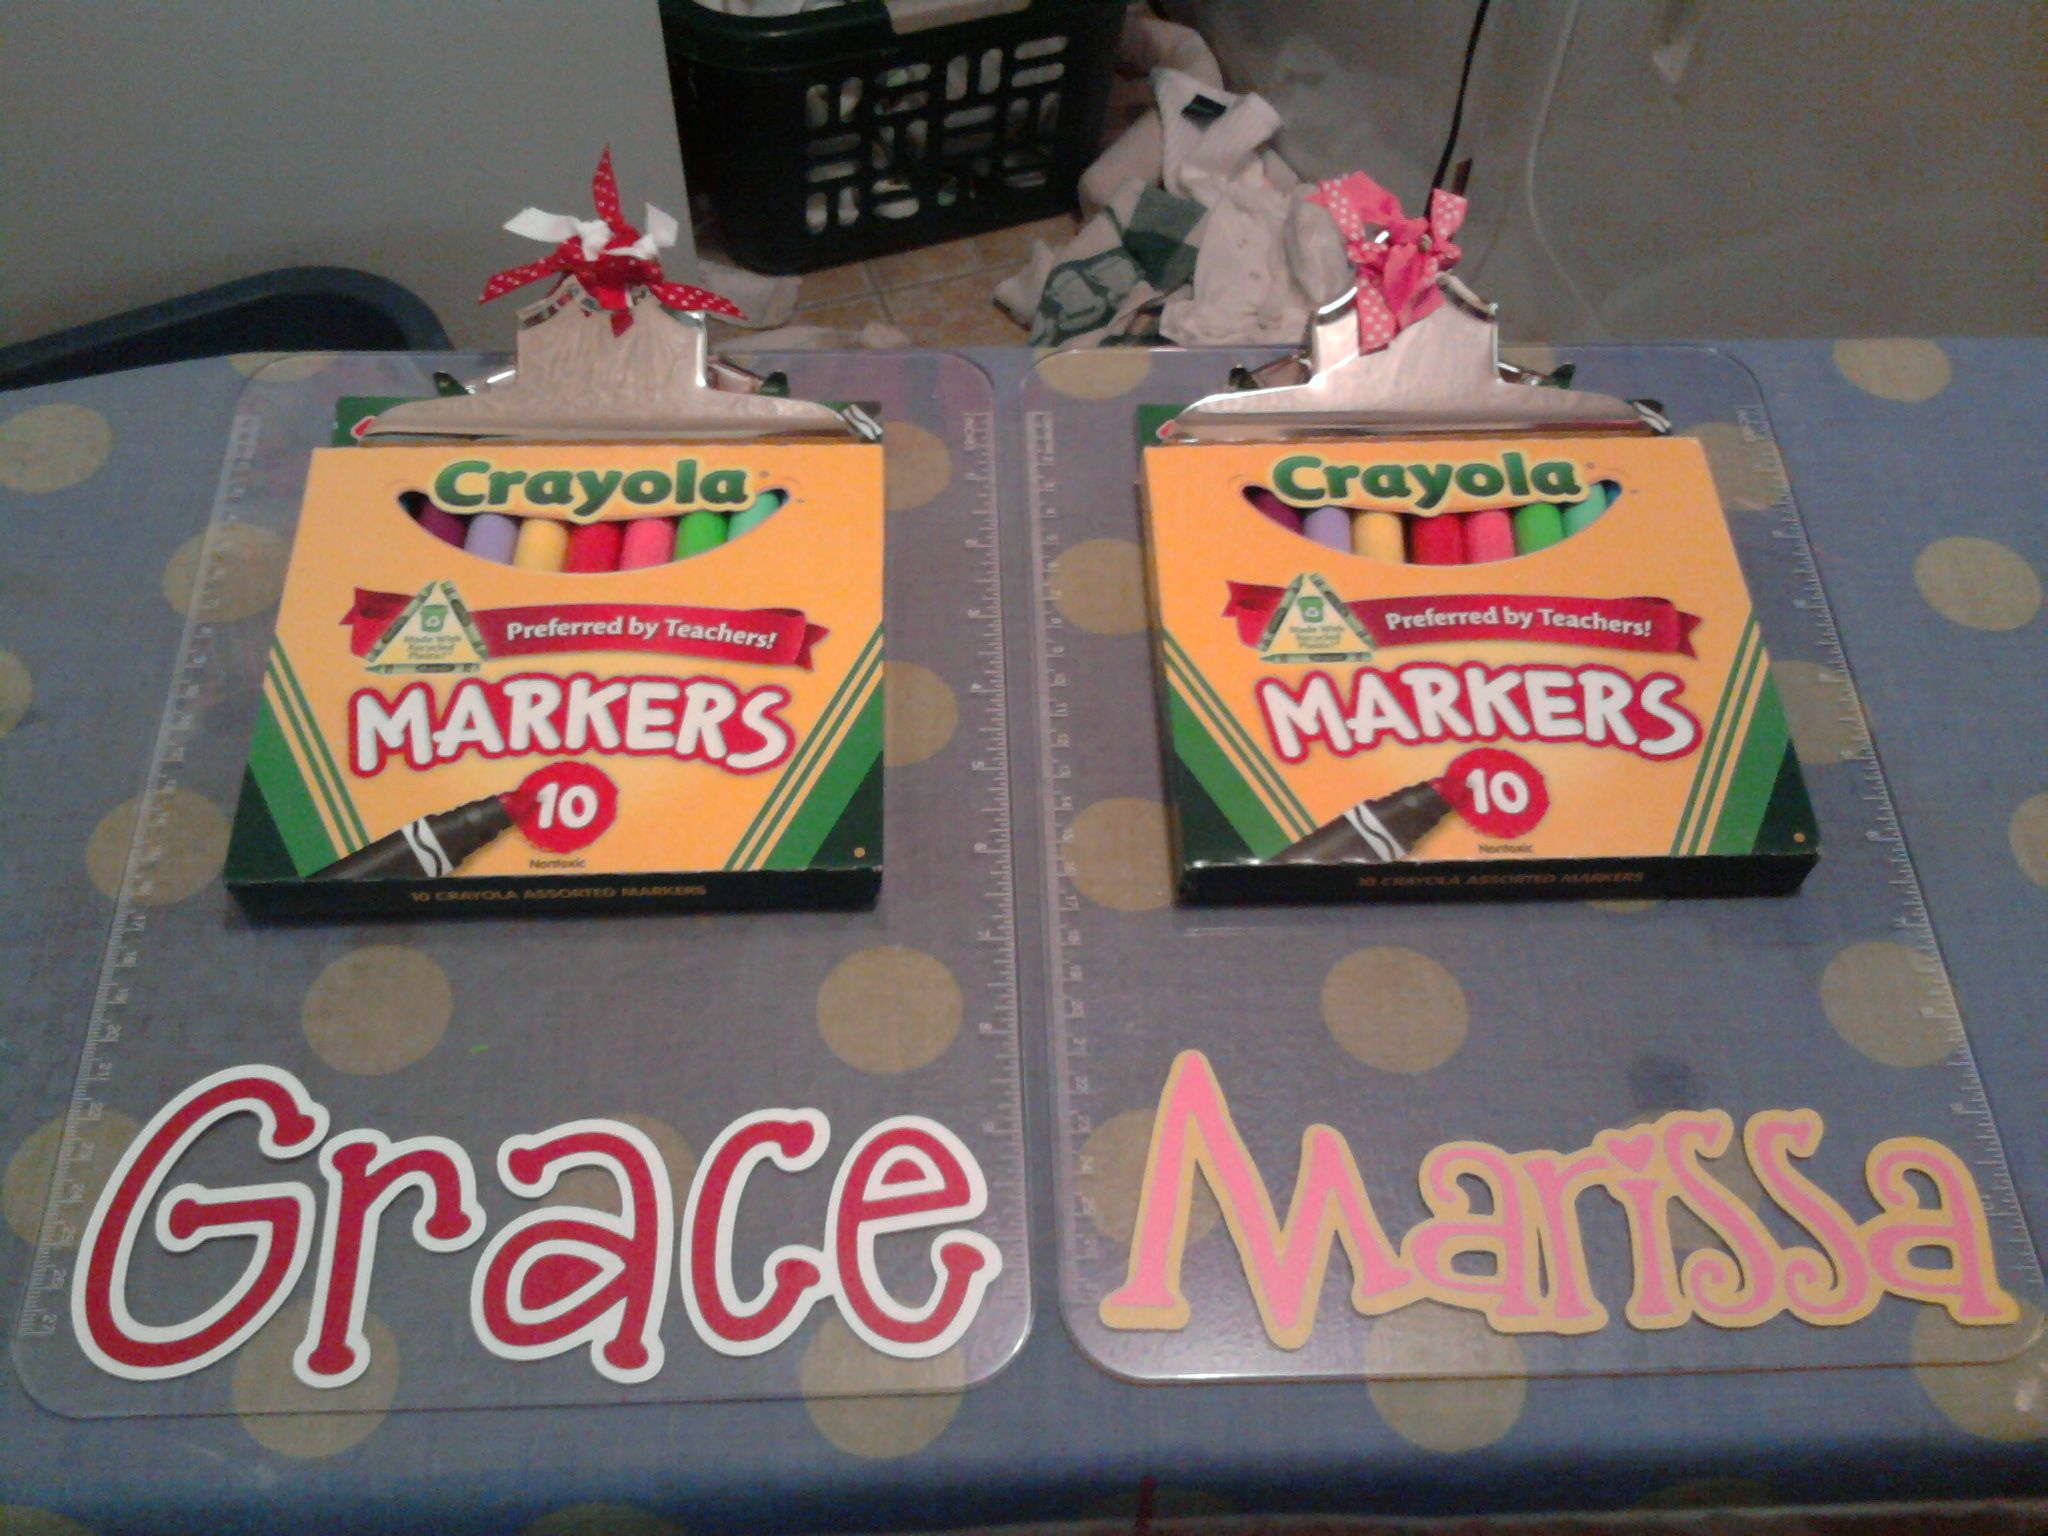 I try to come up with an inexpensive go-to birthday gift every year for friend parties.  This year I bought clipboards from Wal-Mart & personalized them & put a pack of markers with them (stocked up on 97 cent markers during back-to-school). Jolie was proud to give them :)